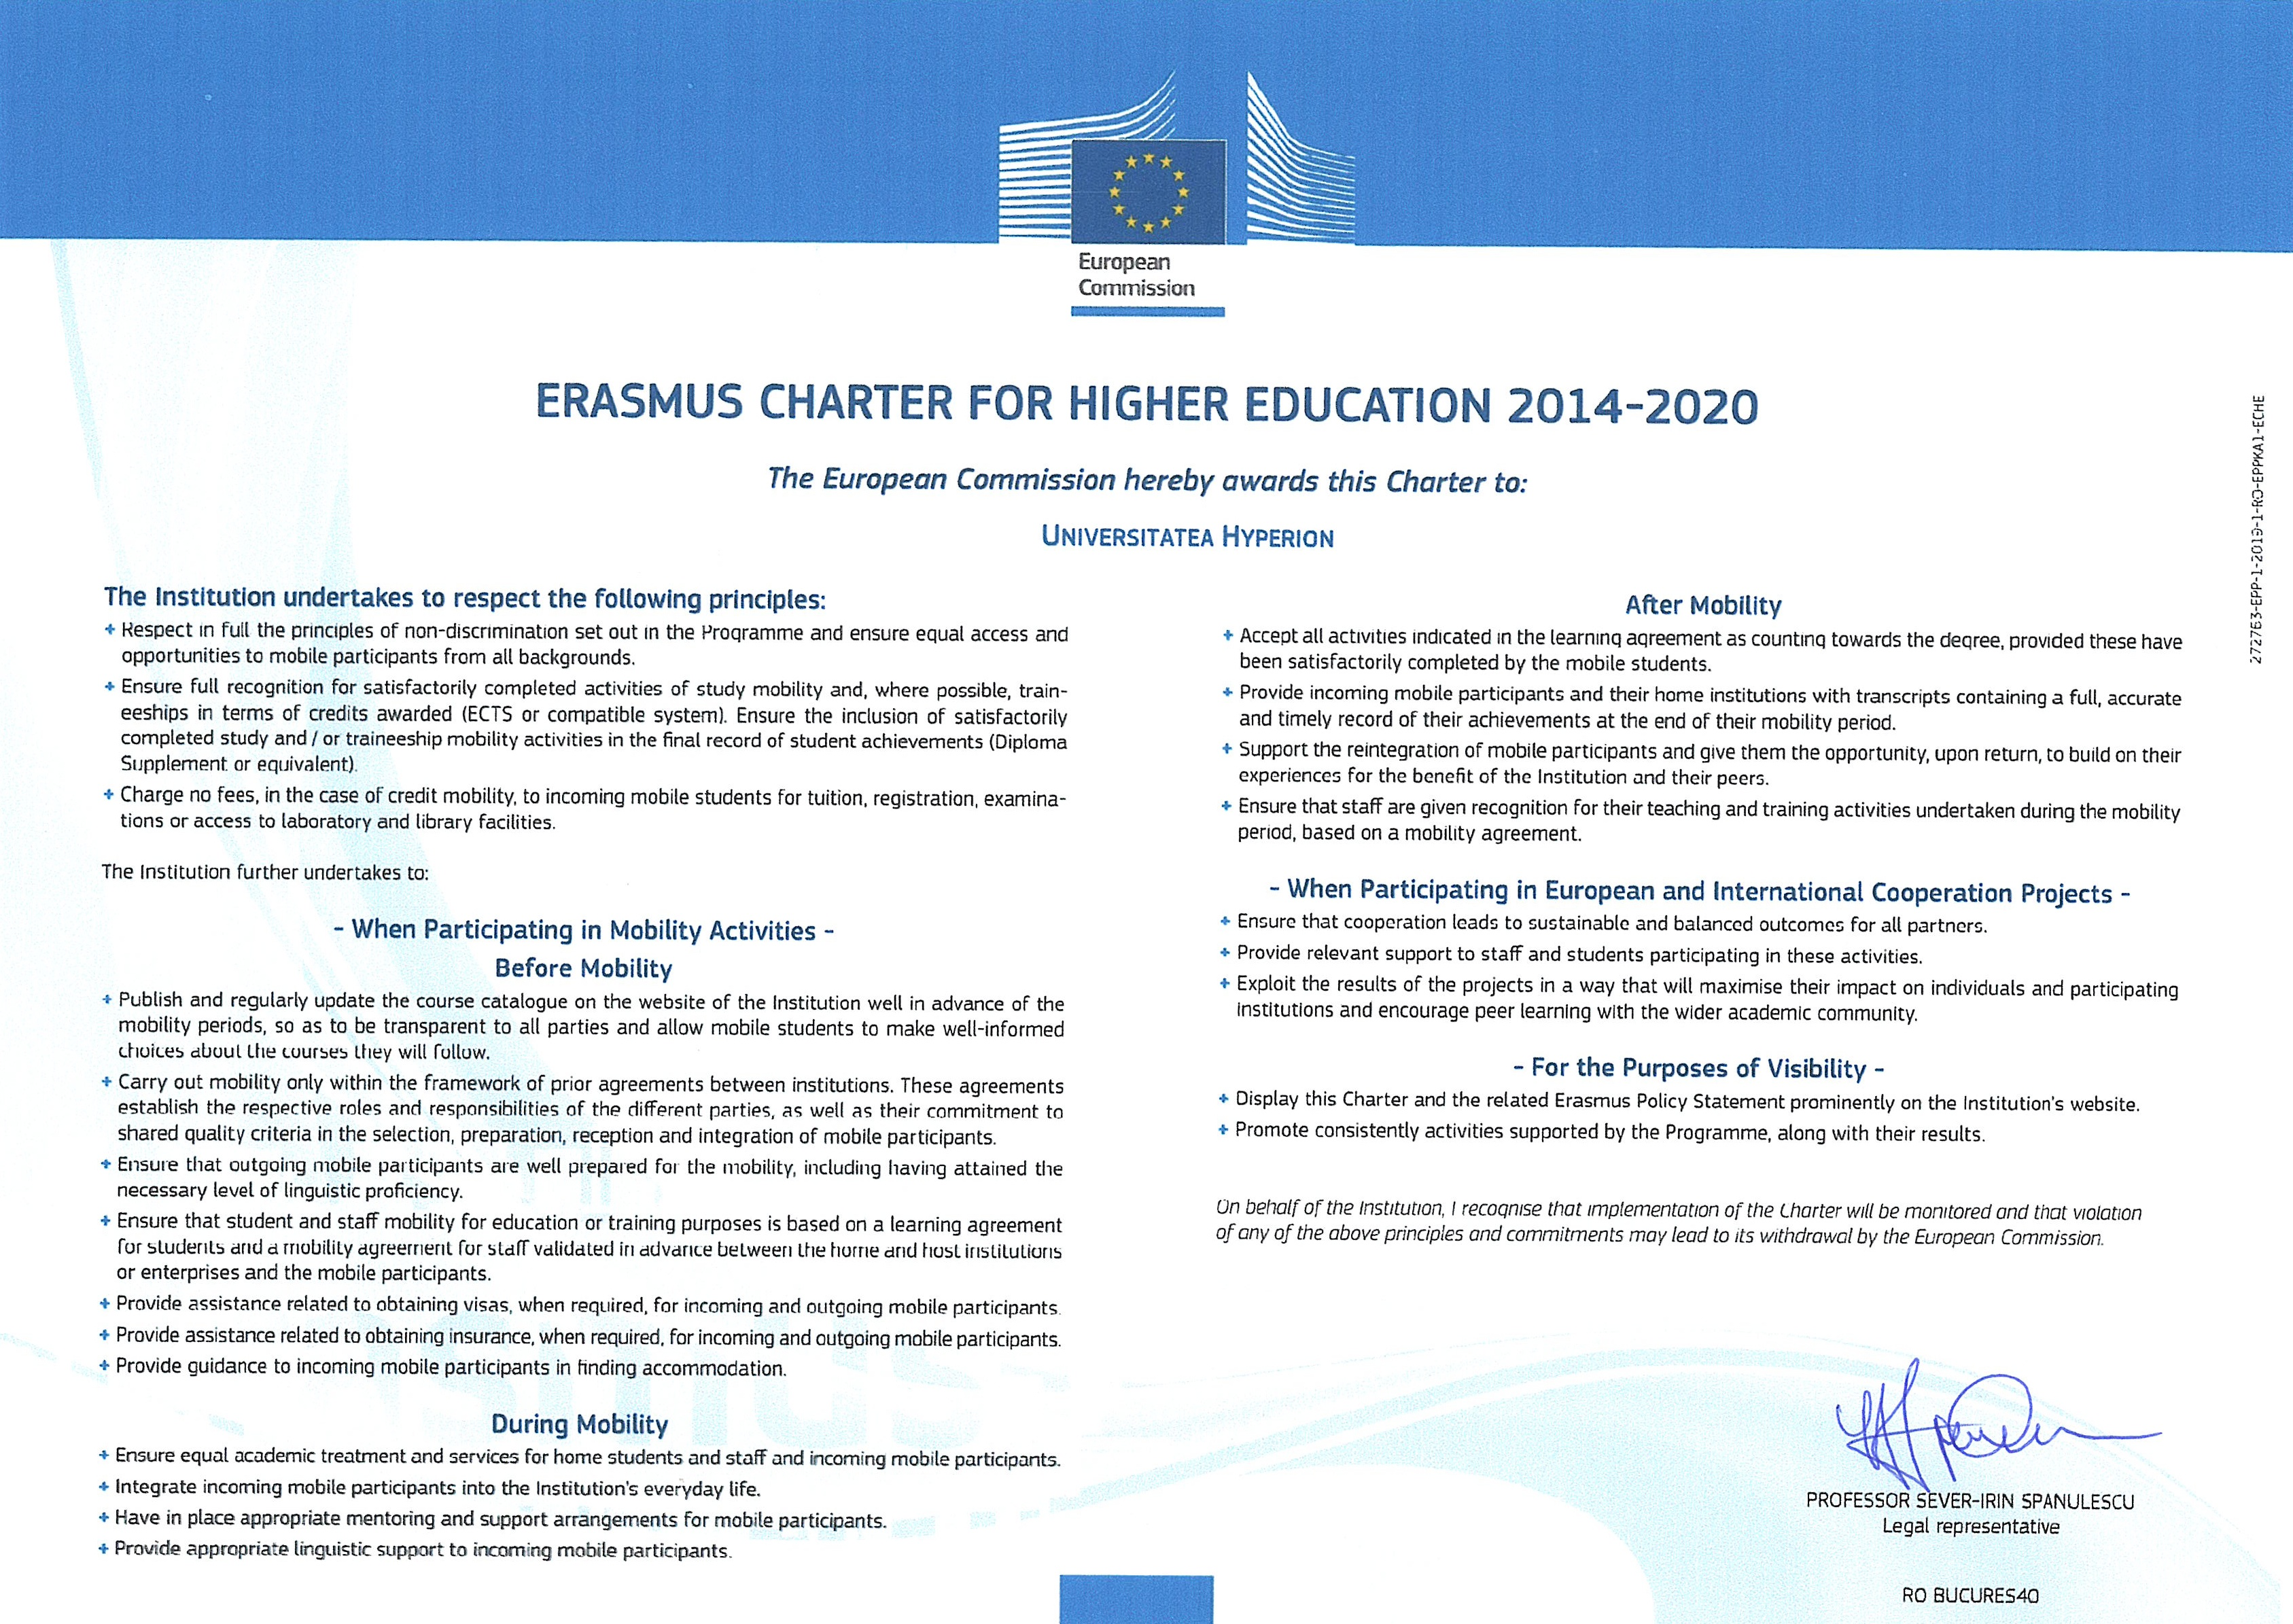 Carta ERASMUS+, Universitatea Hyperion